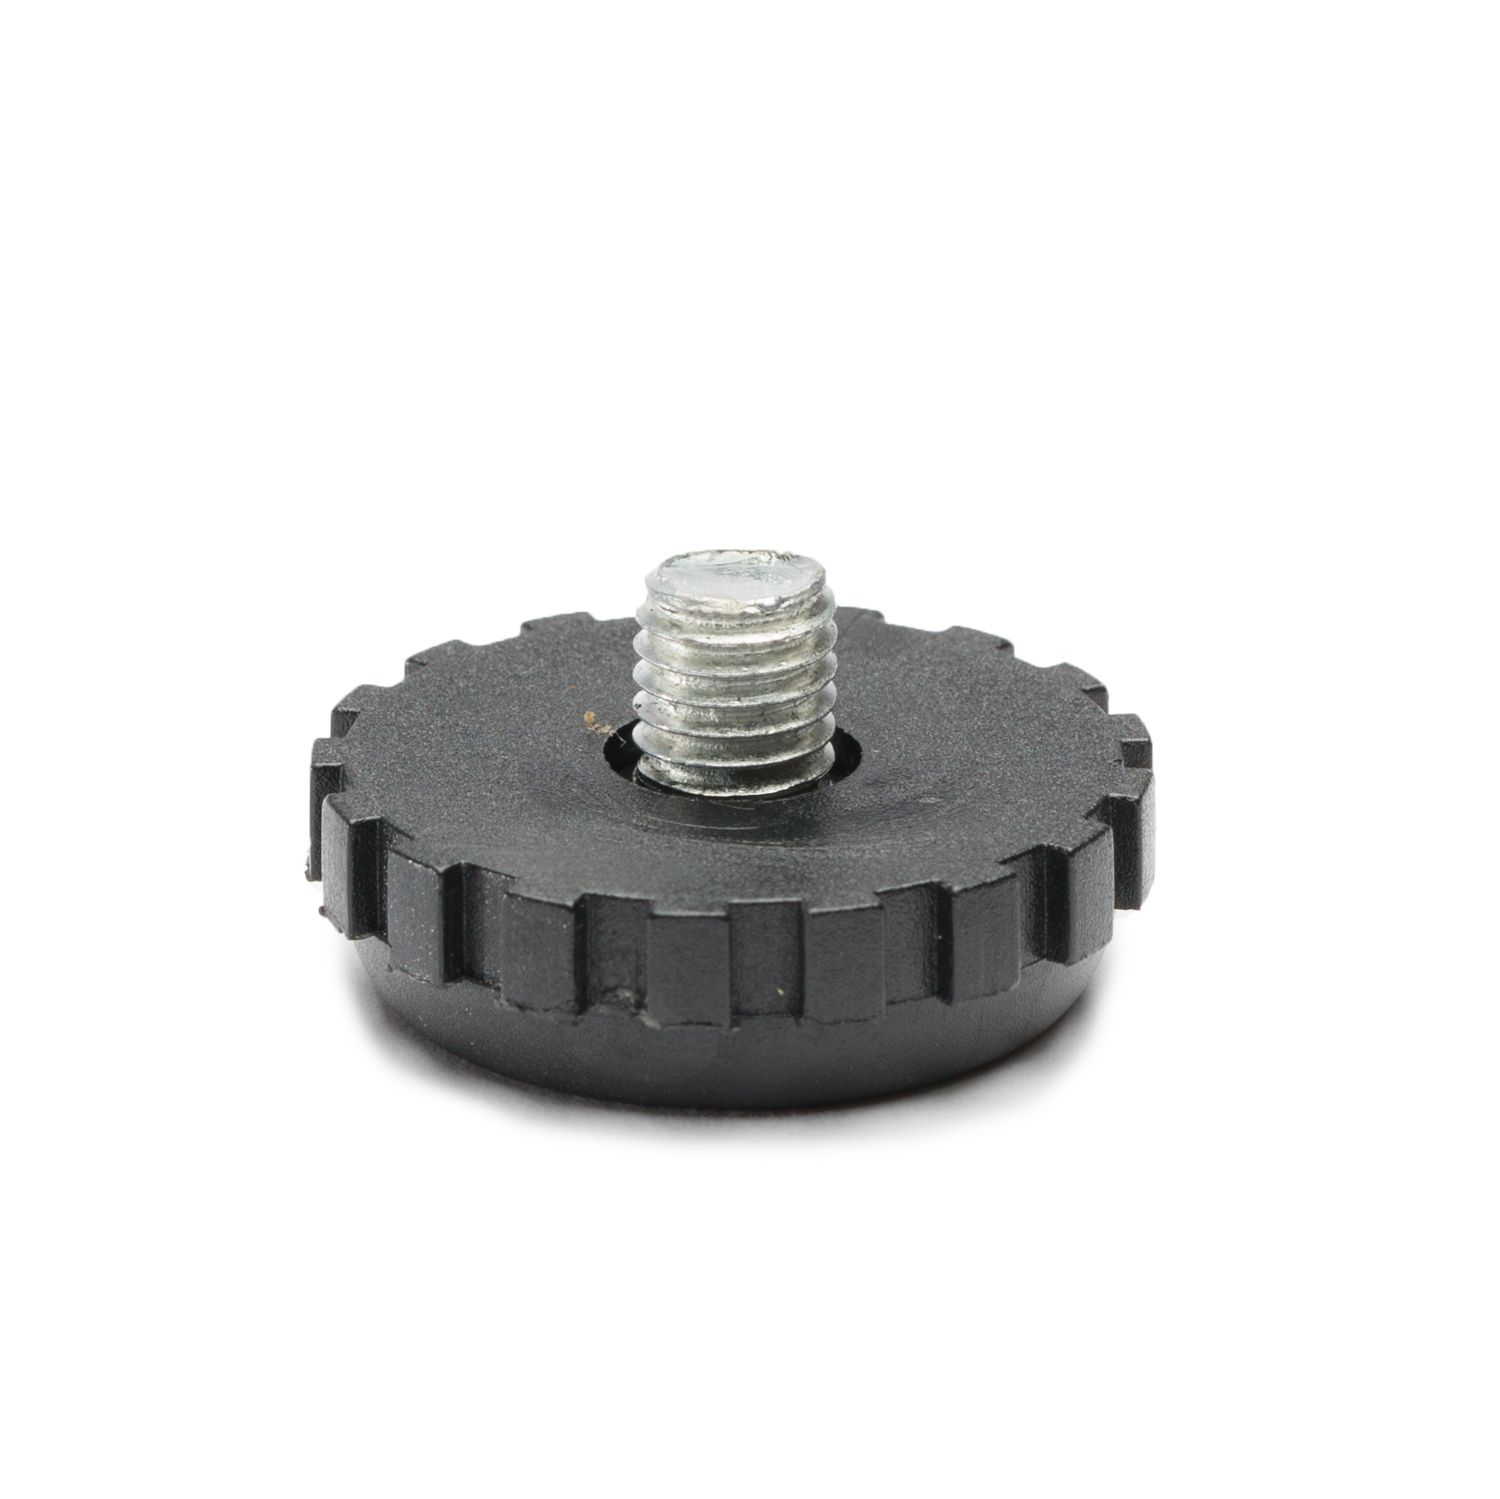 Plastic Leveling Glide for JSS Series Bases